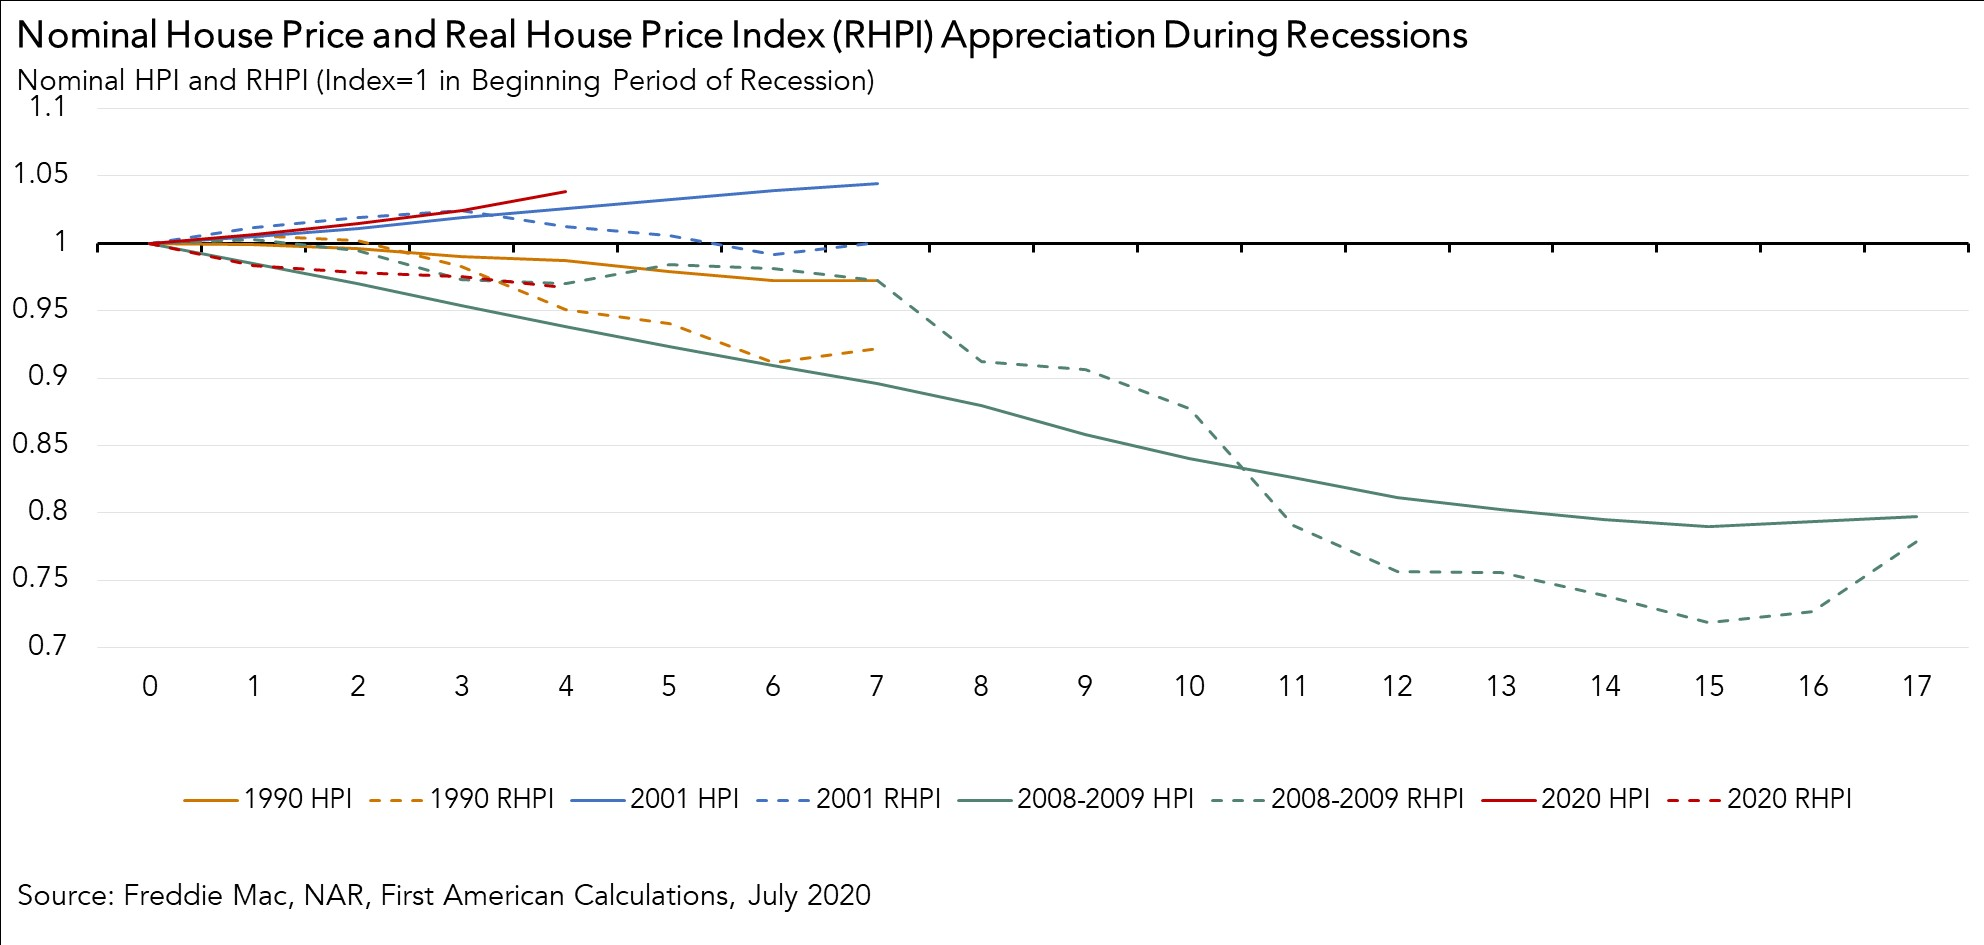 Nominal House Price and Real House Price Index  Appreciation During Recessions July 2020